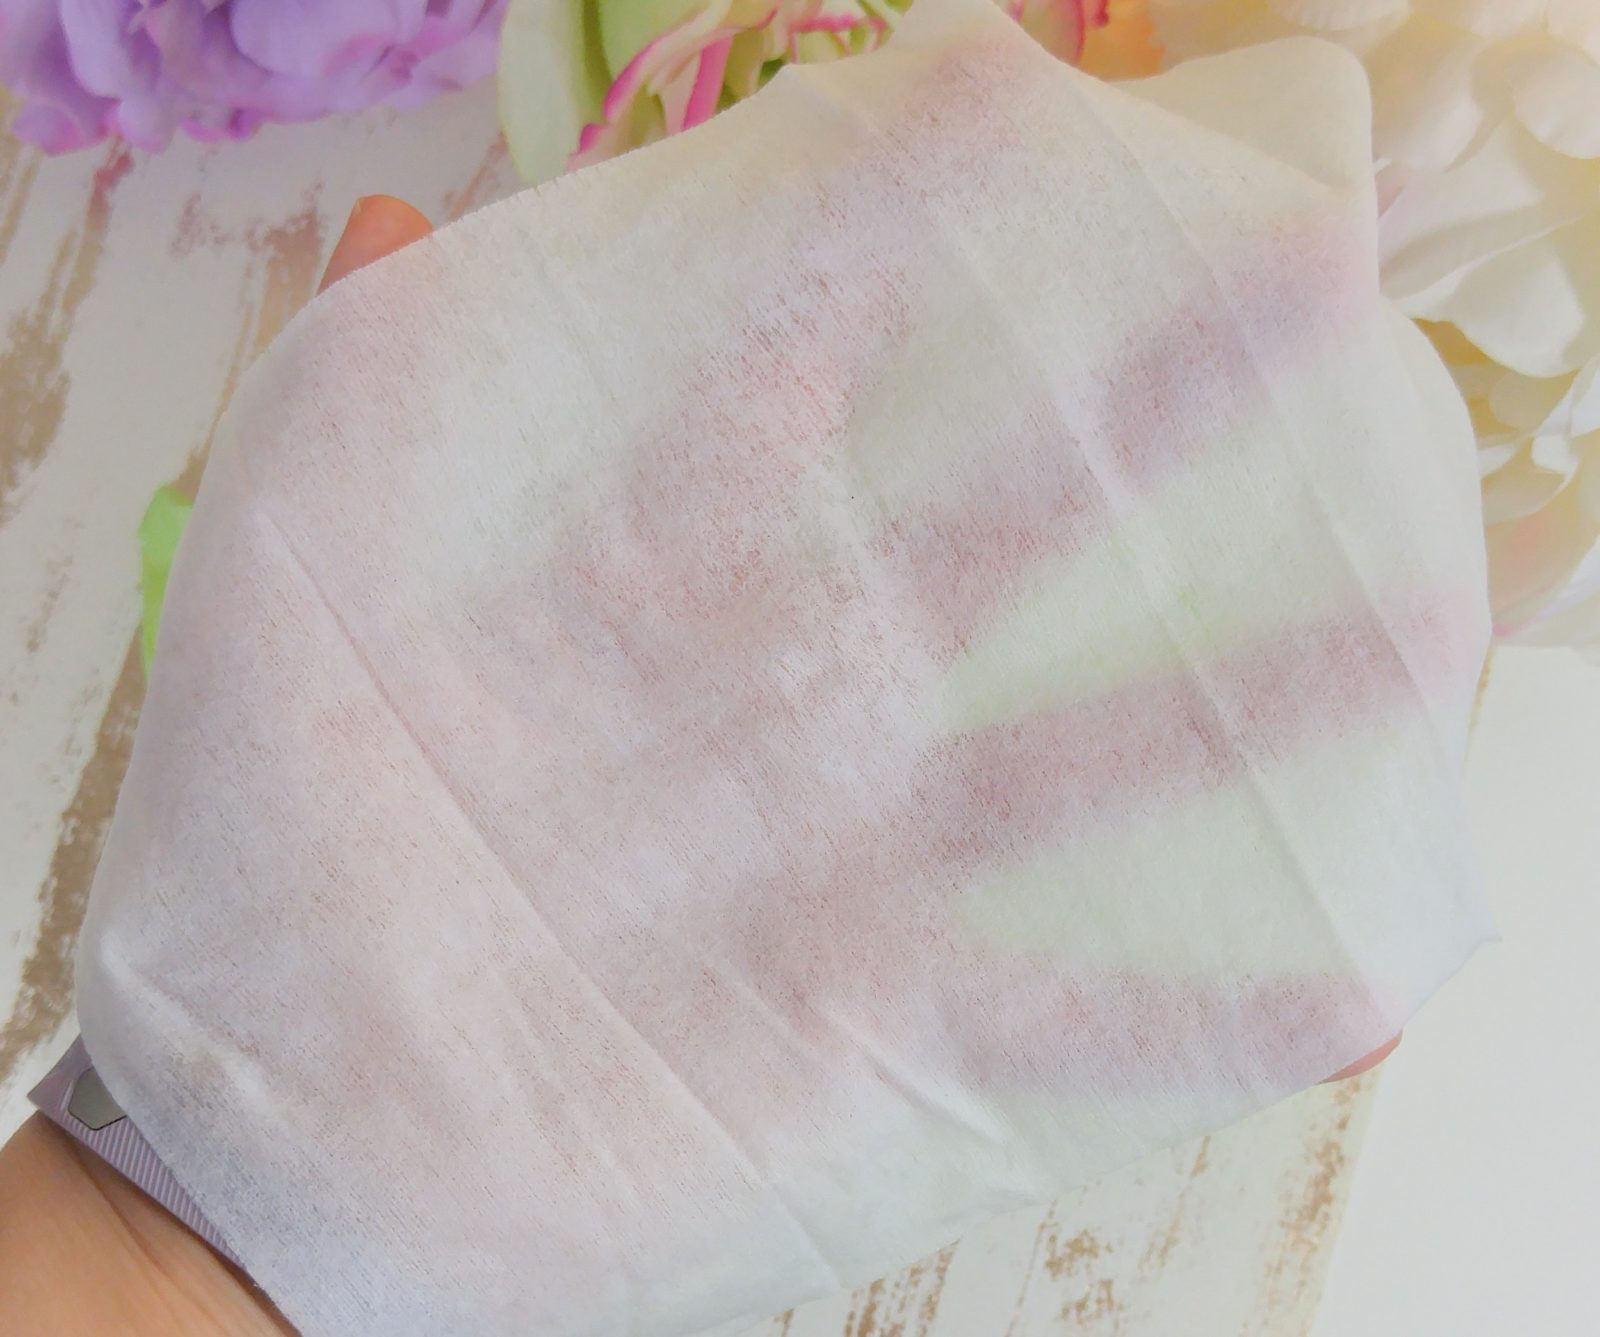 Pixi Beauty Cleansing Cloth Review